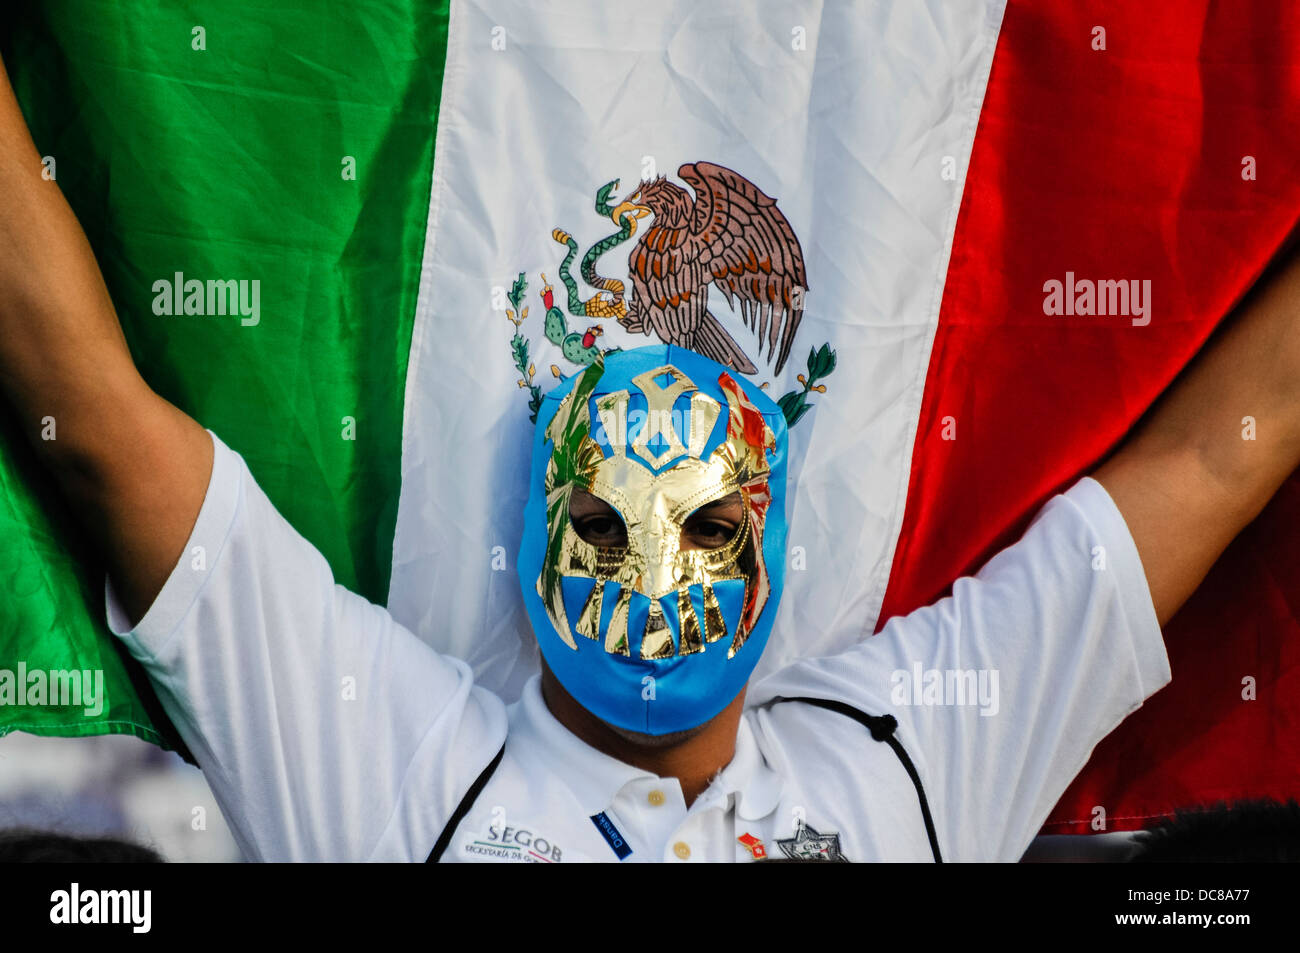 a man wears a mexican wrestler u0027s mask and holds up a mexican flag